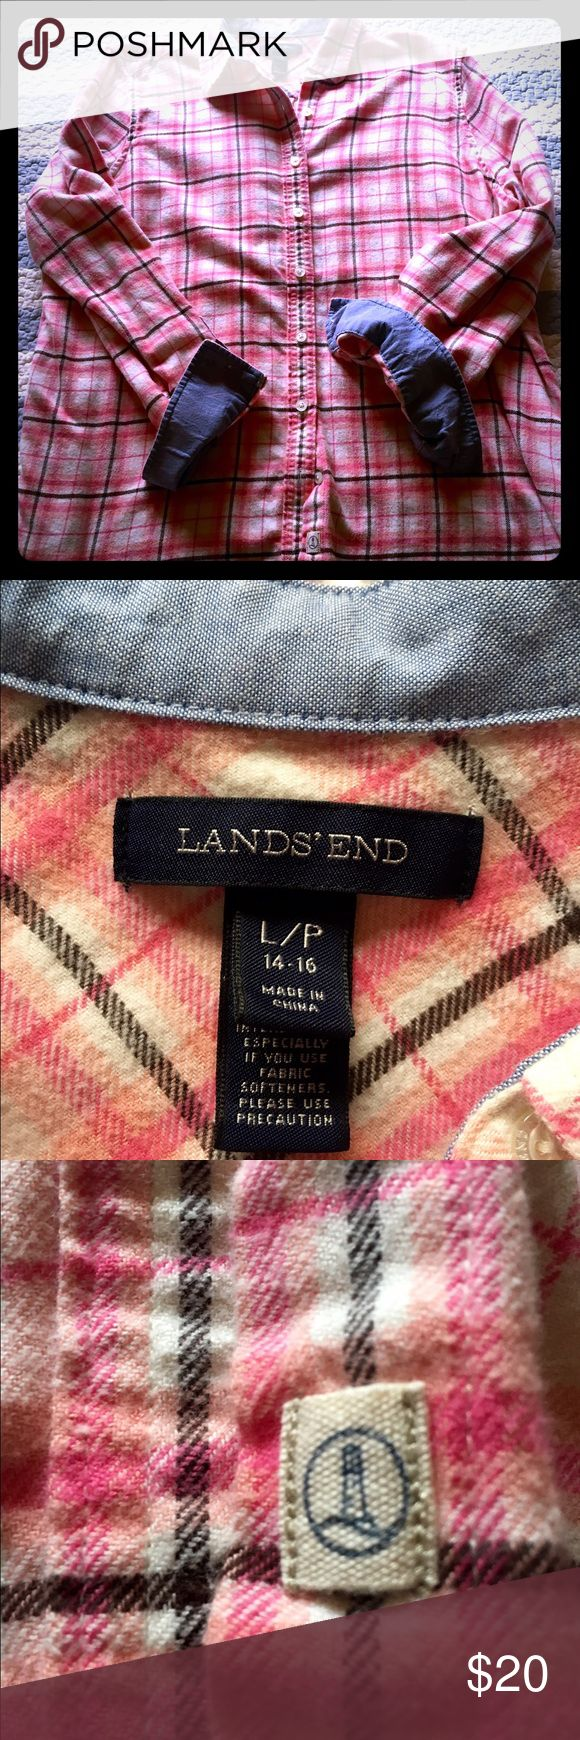 Lands End flannel LP shirt with denim accent 100% cotton flannel shirt pink and black with denim fabric on cuffs and collar. Super comfortable and cozy! Great for fall. Size 14-16!large petite Lands' End Tops Button Down Shirts